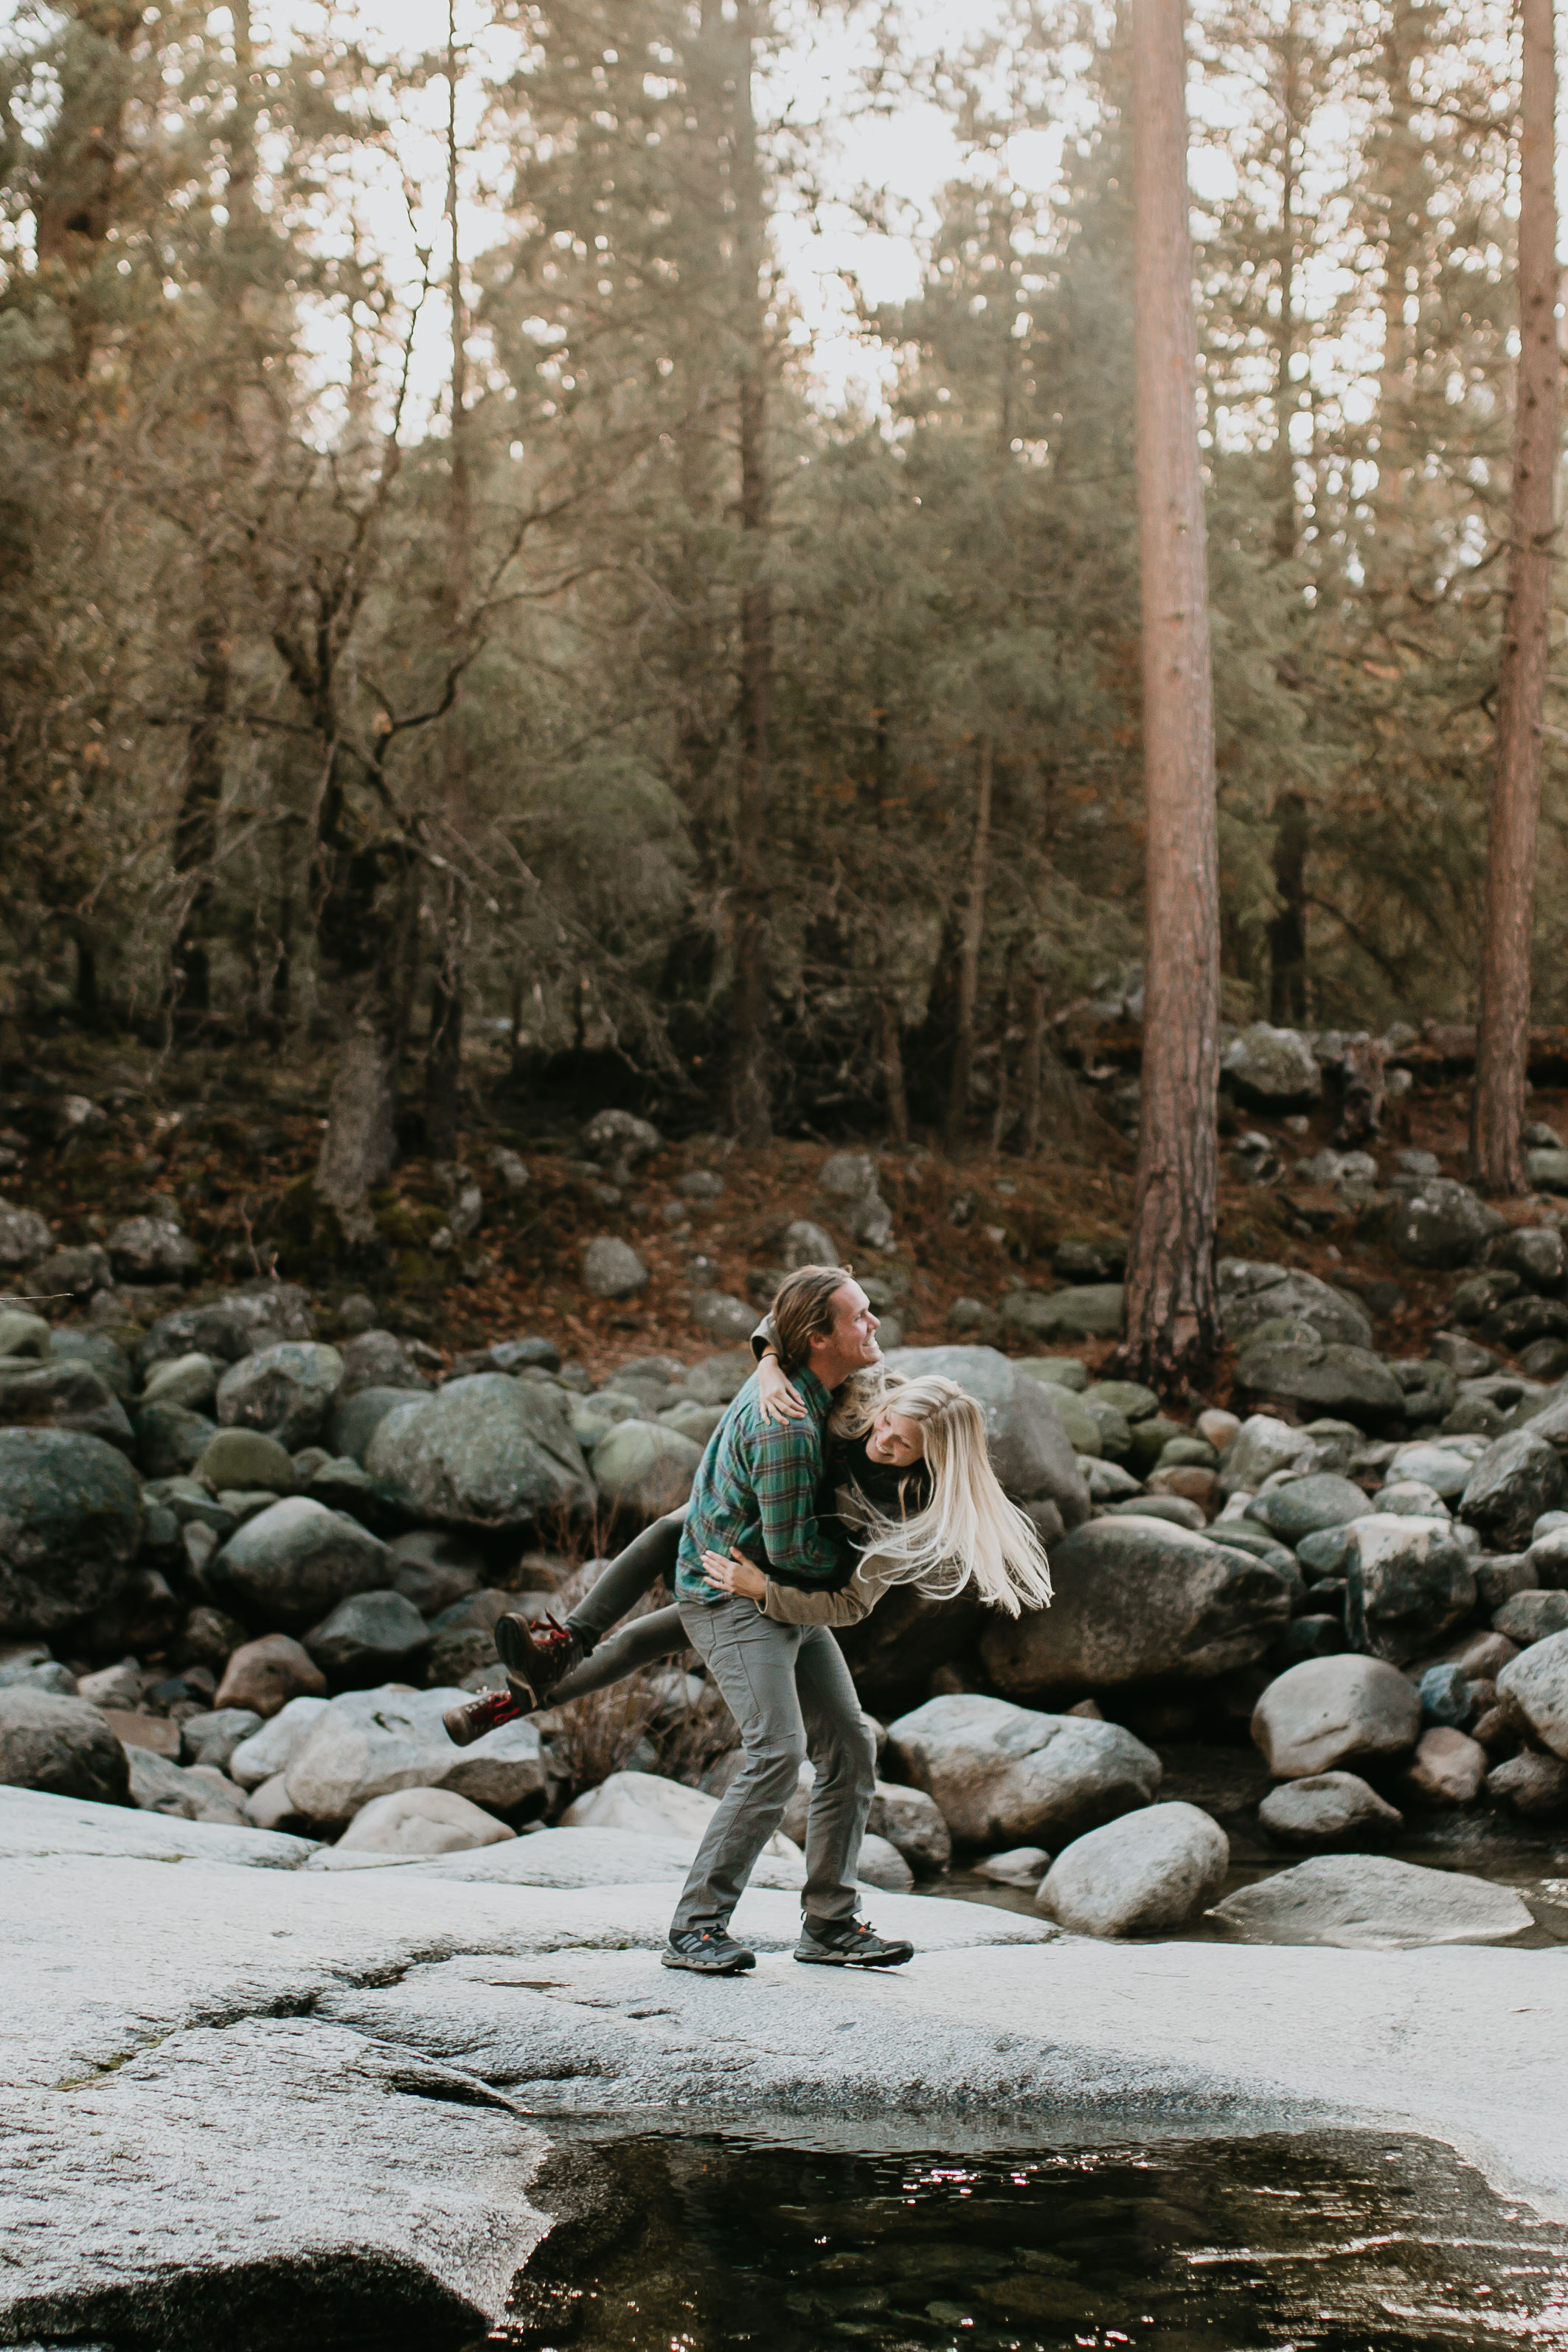 nicole-daacke-photography-yosemite-riverside-adventurous-engagement-photos-in-yosemite-national-park-elopement-photographer-weddings-travel-destination-wedding-eloping-elope-pine-forest-6.jpg